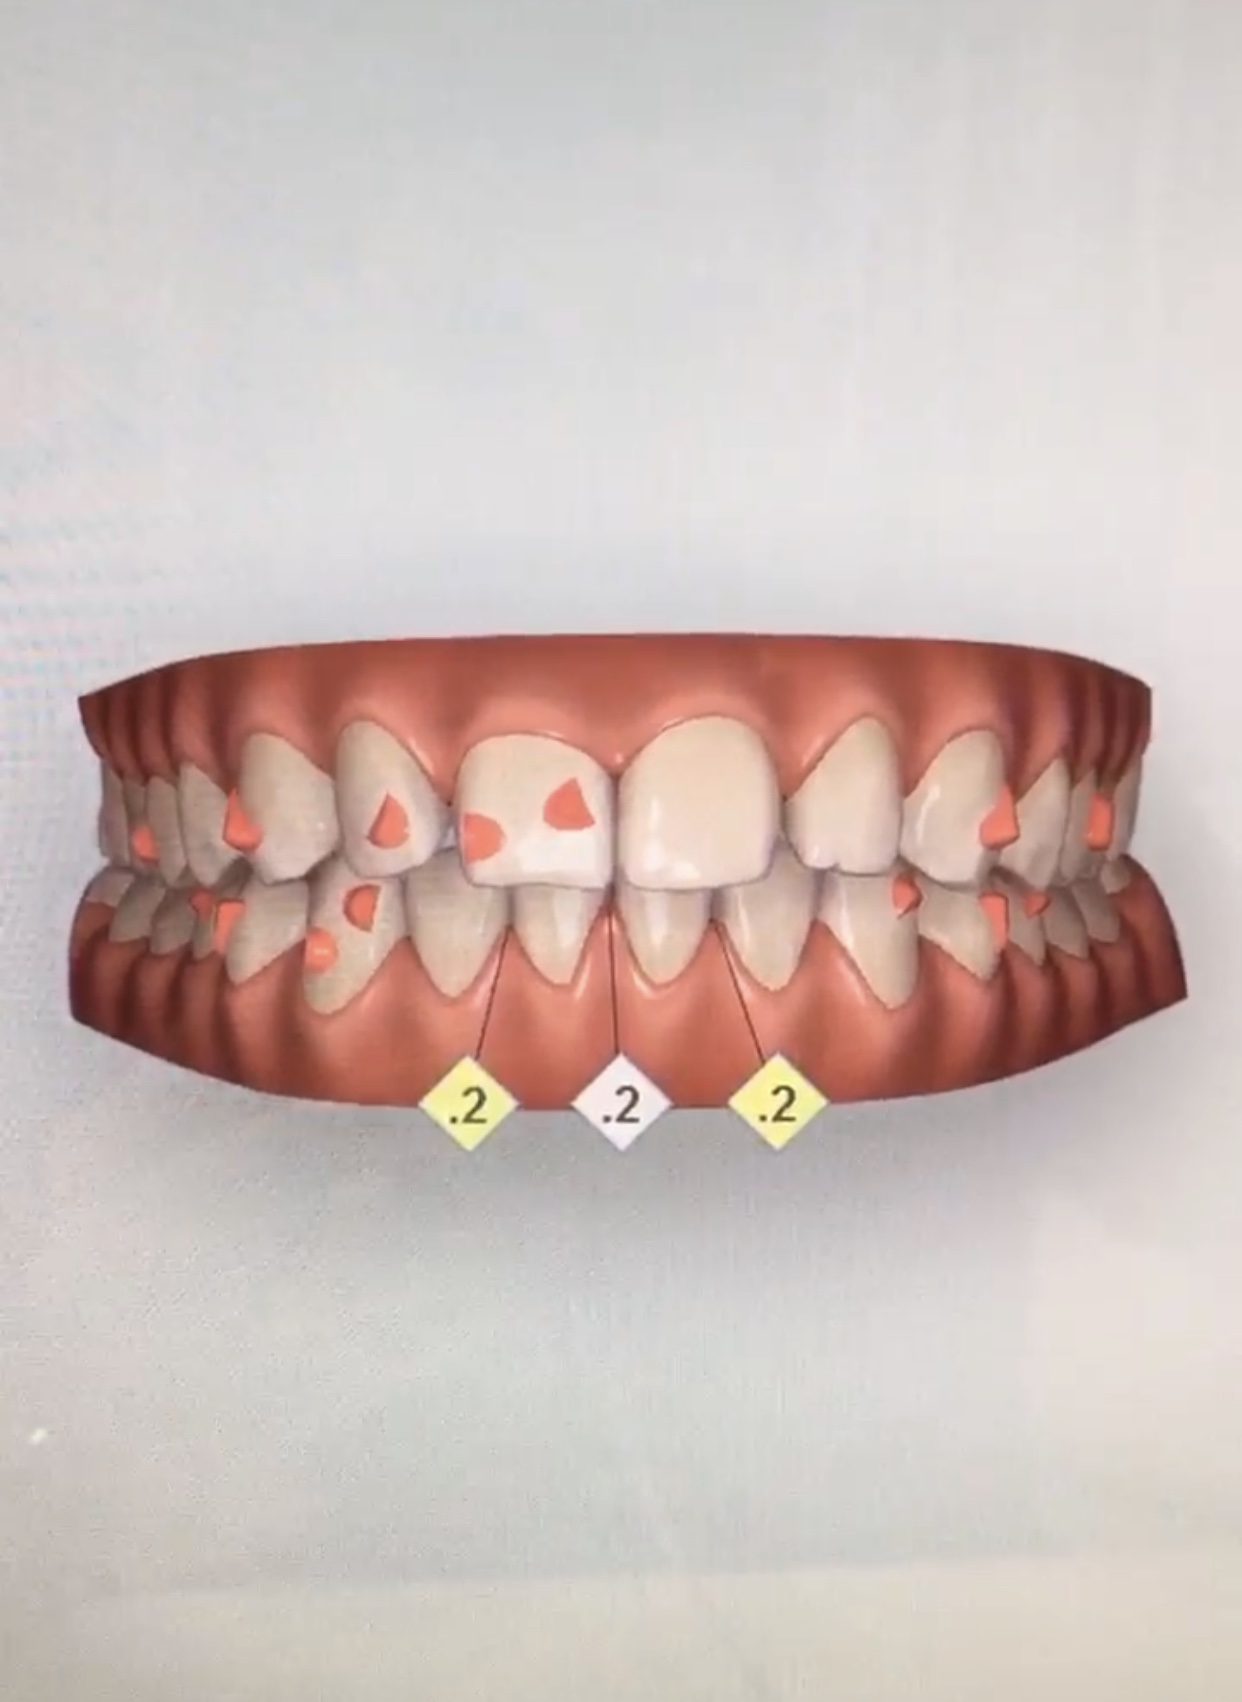 lineberger orthodontists